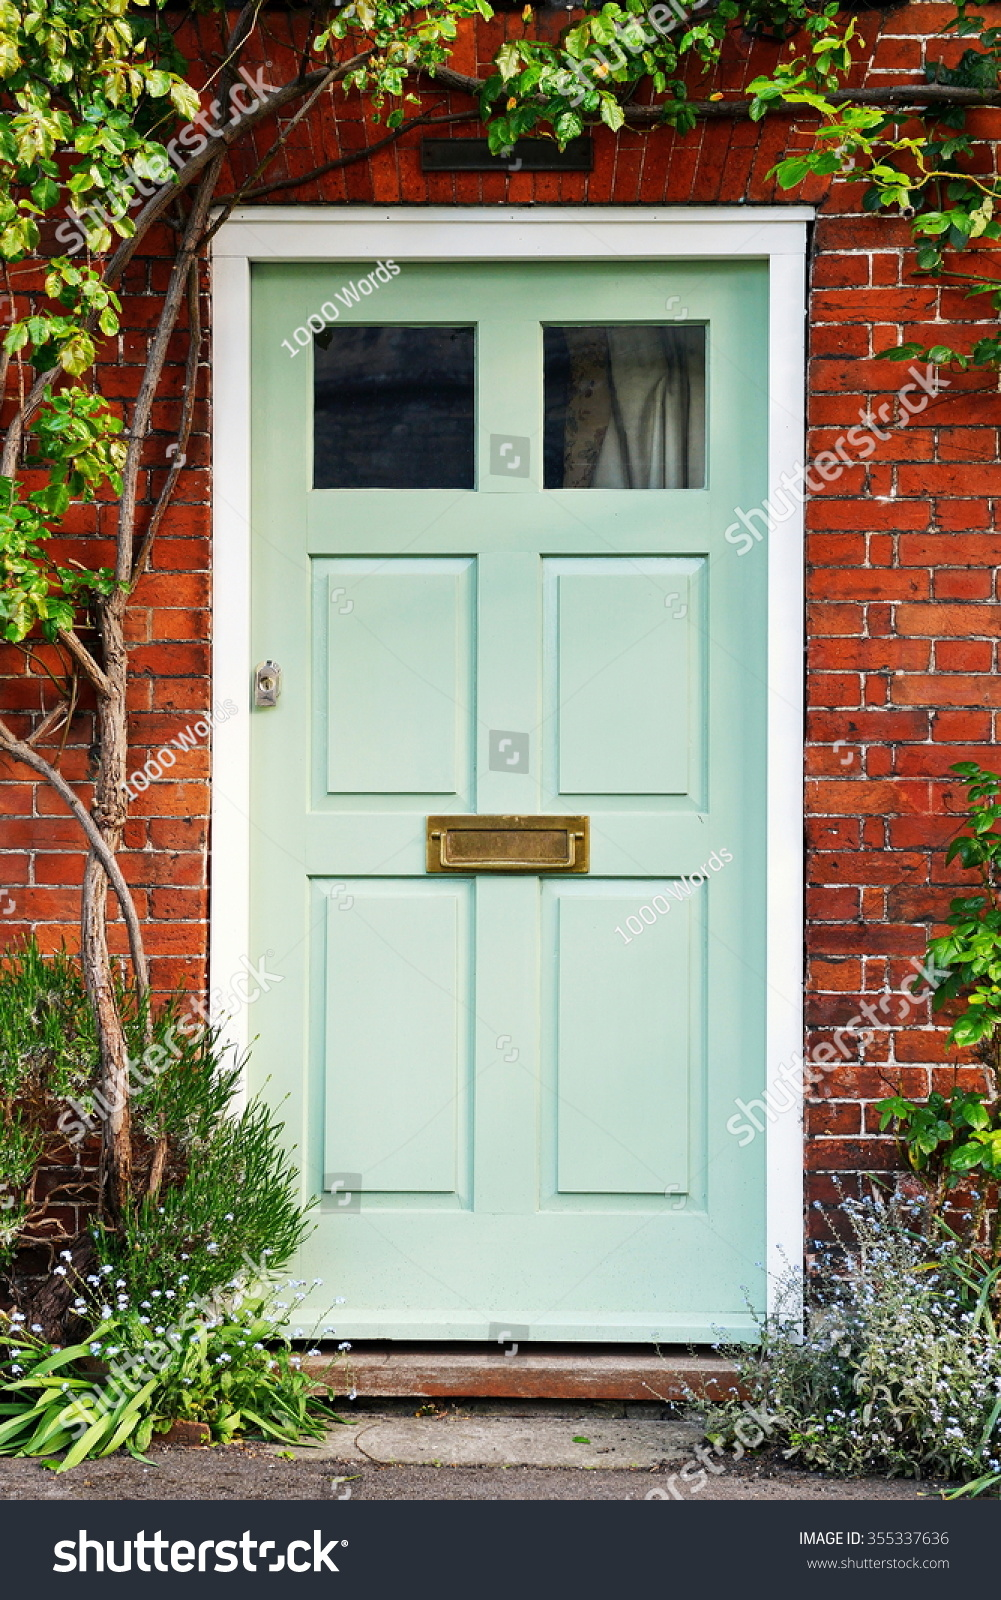 Red front door on brick house - View Of A Beautiful Front Door Of A Red Brick House 355337636